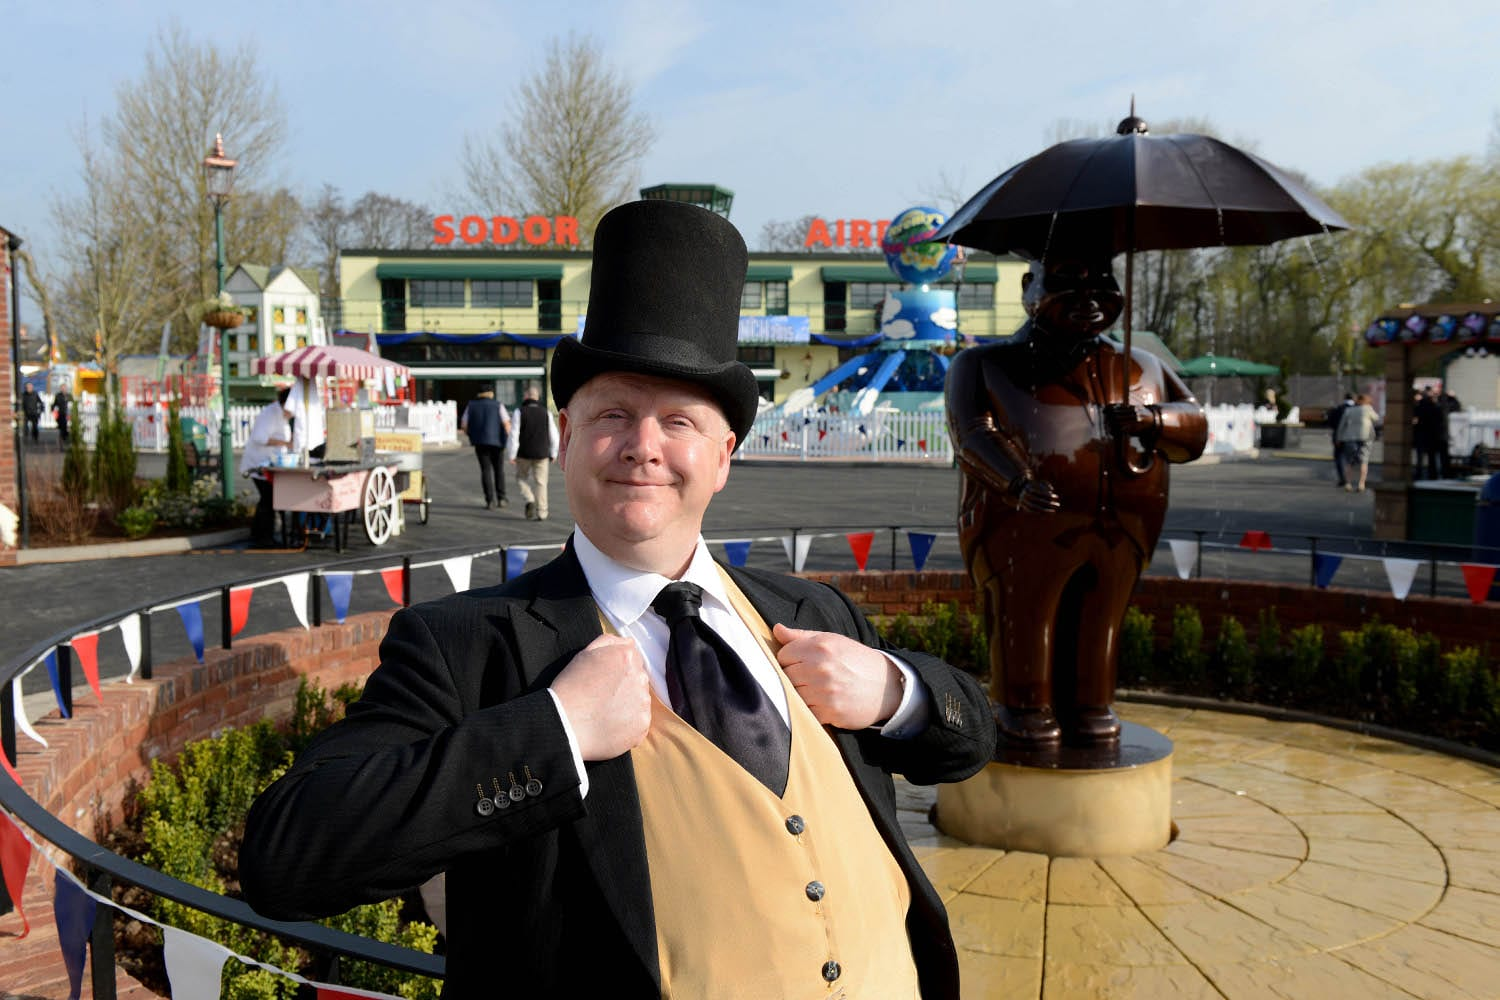 Opening of the Thomas Land Expansion at Drayton Manor Theme Park. The Fat Controller prepares to open the doors.